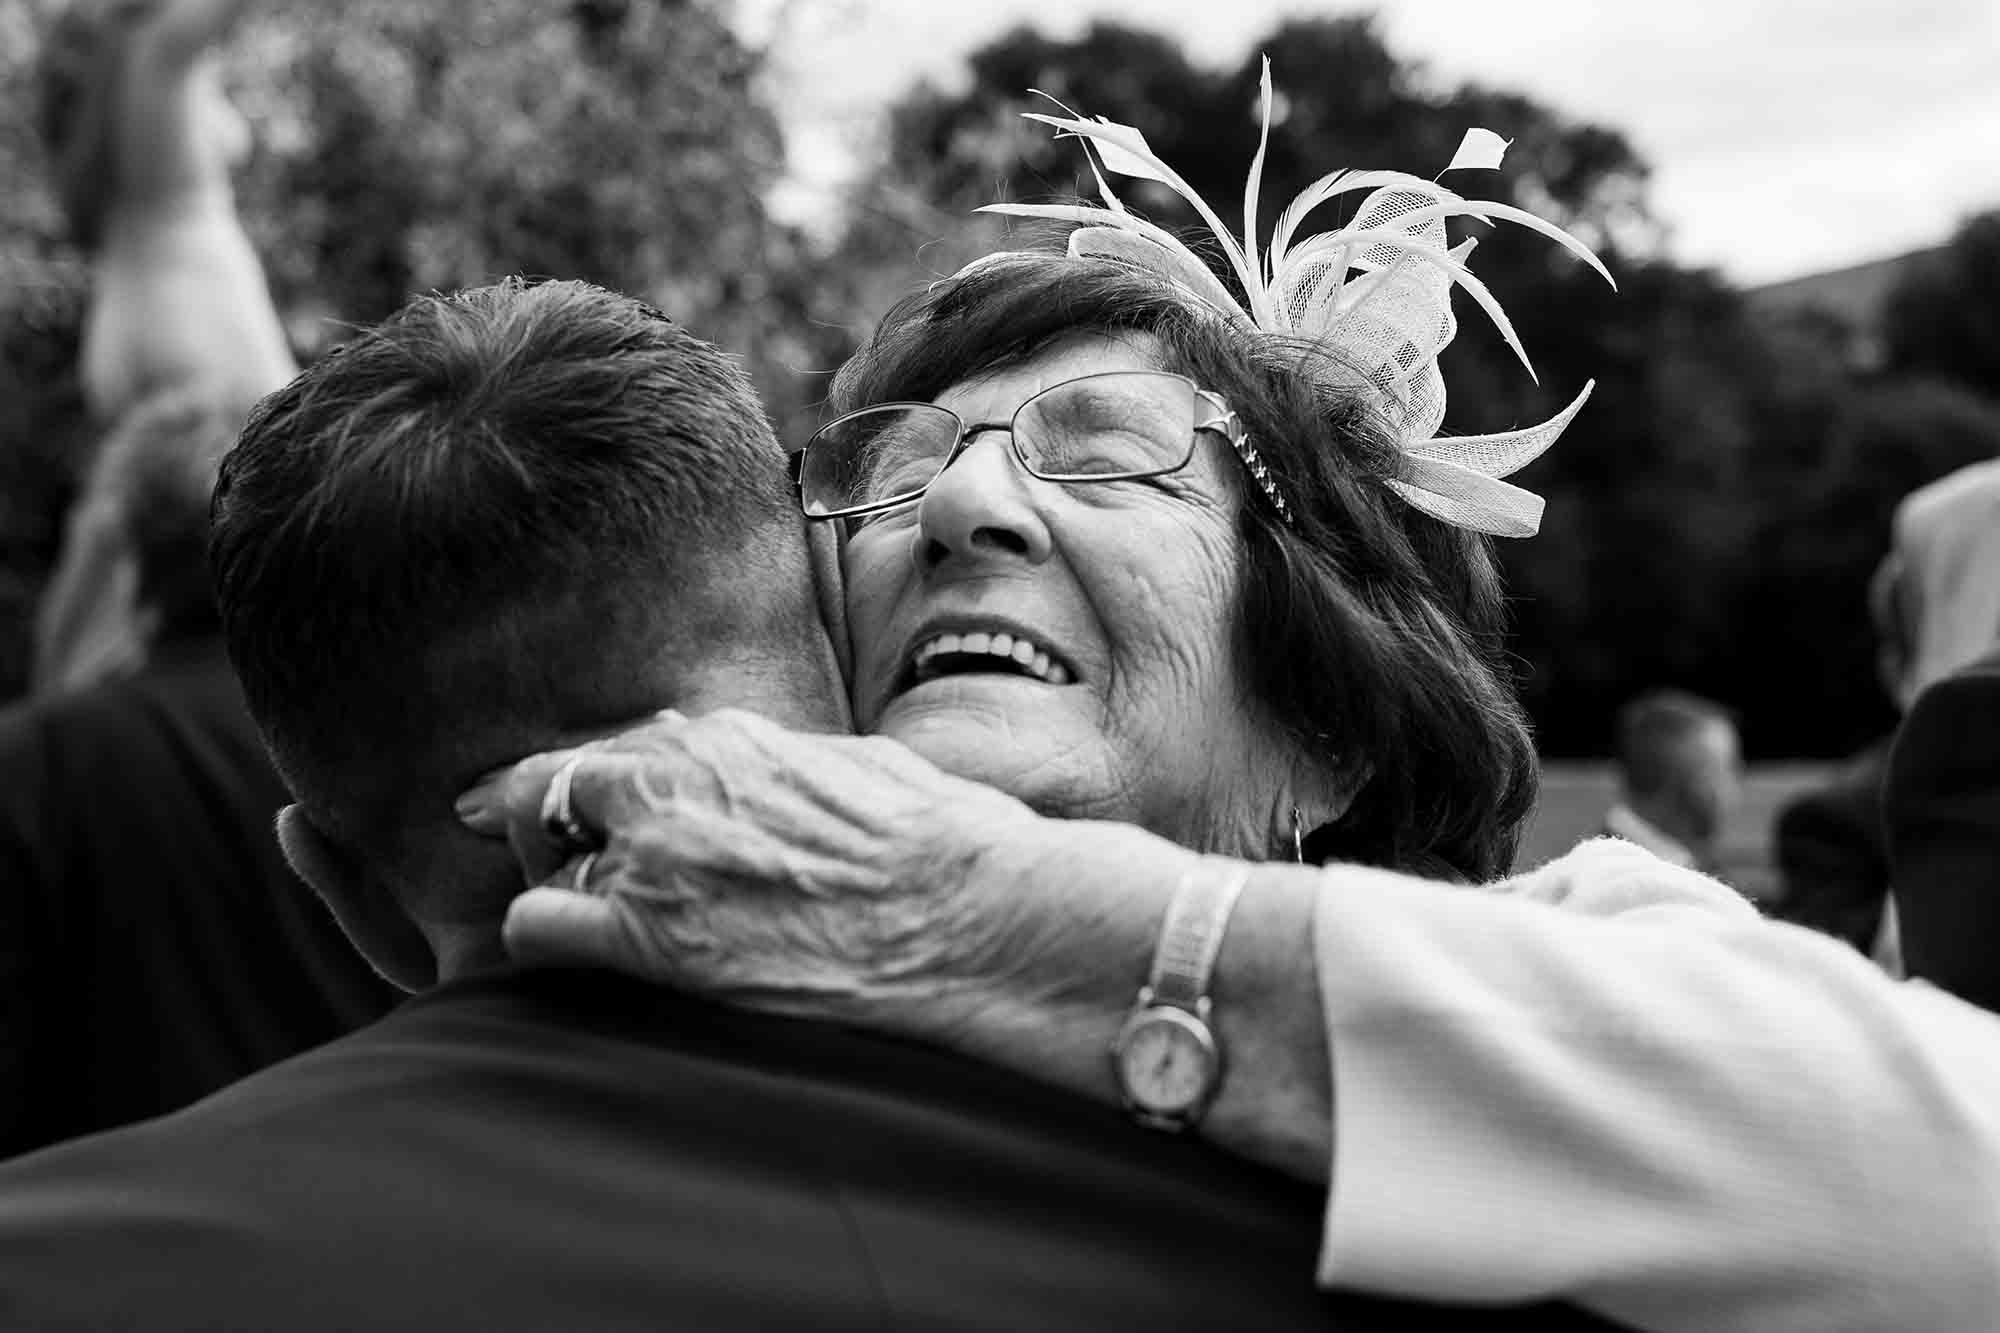 The groom hugging his grandma at a wedding